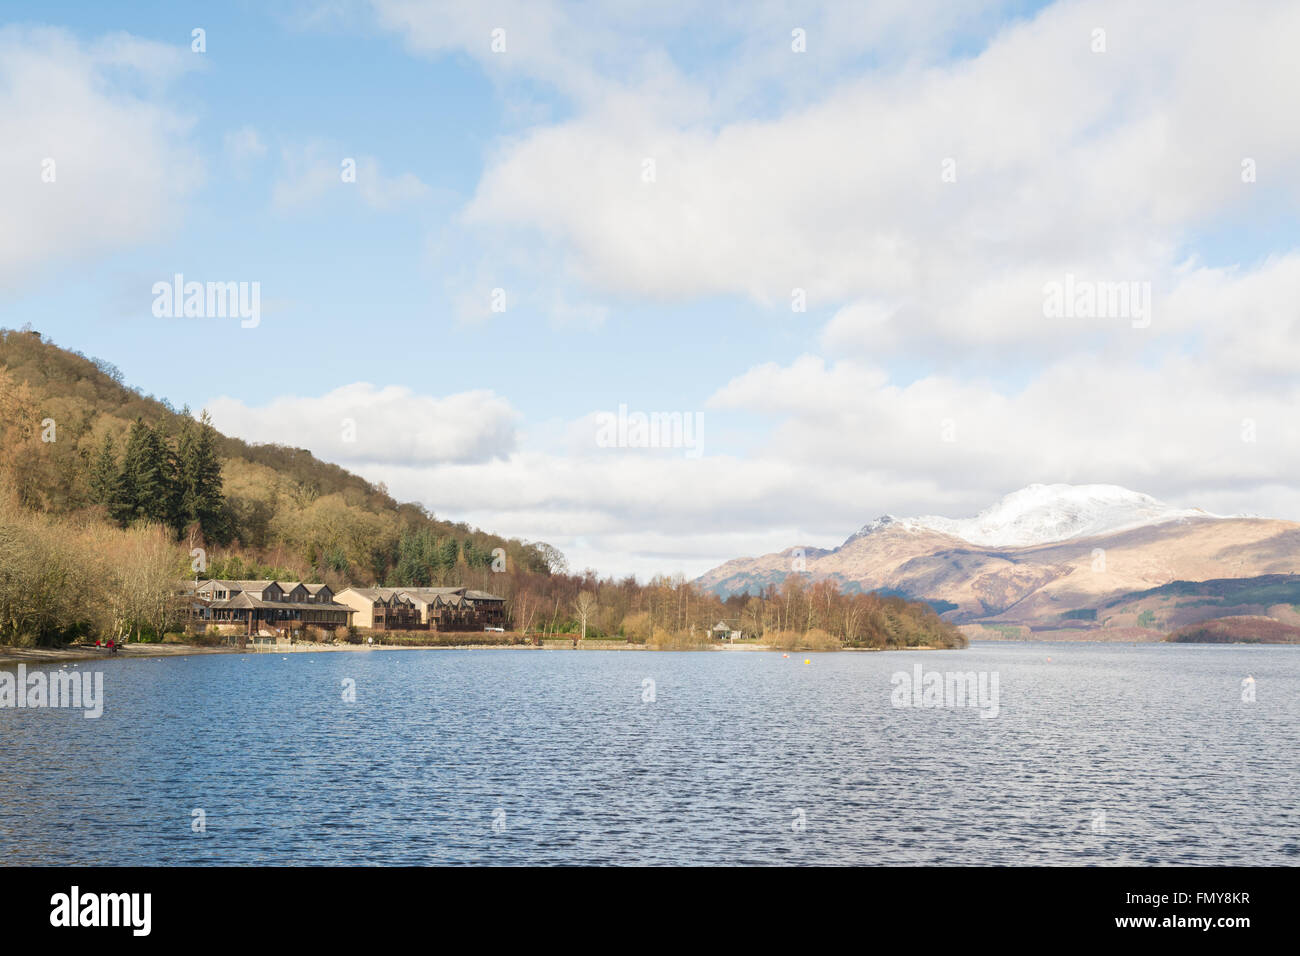 Lodge on Loch Lomond Hotel, Luss, Loch Lomond, Scotland in March with a snow capped Ben Lomond - Stock Image